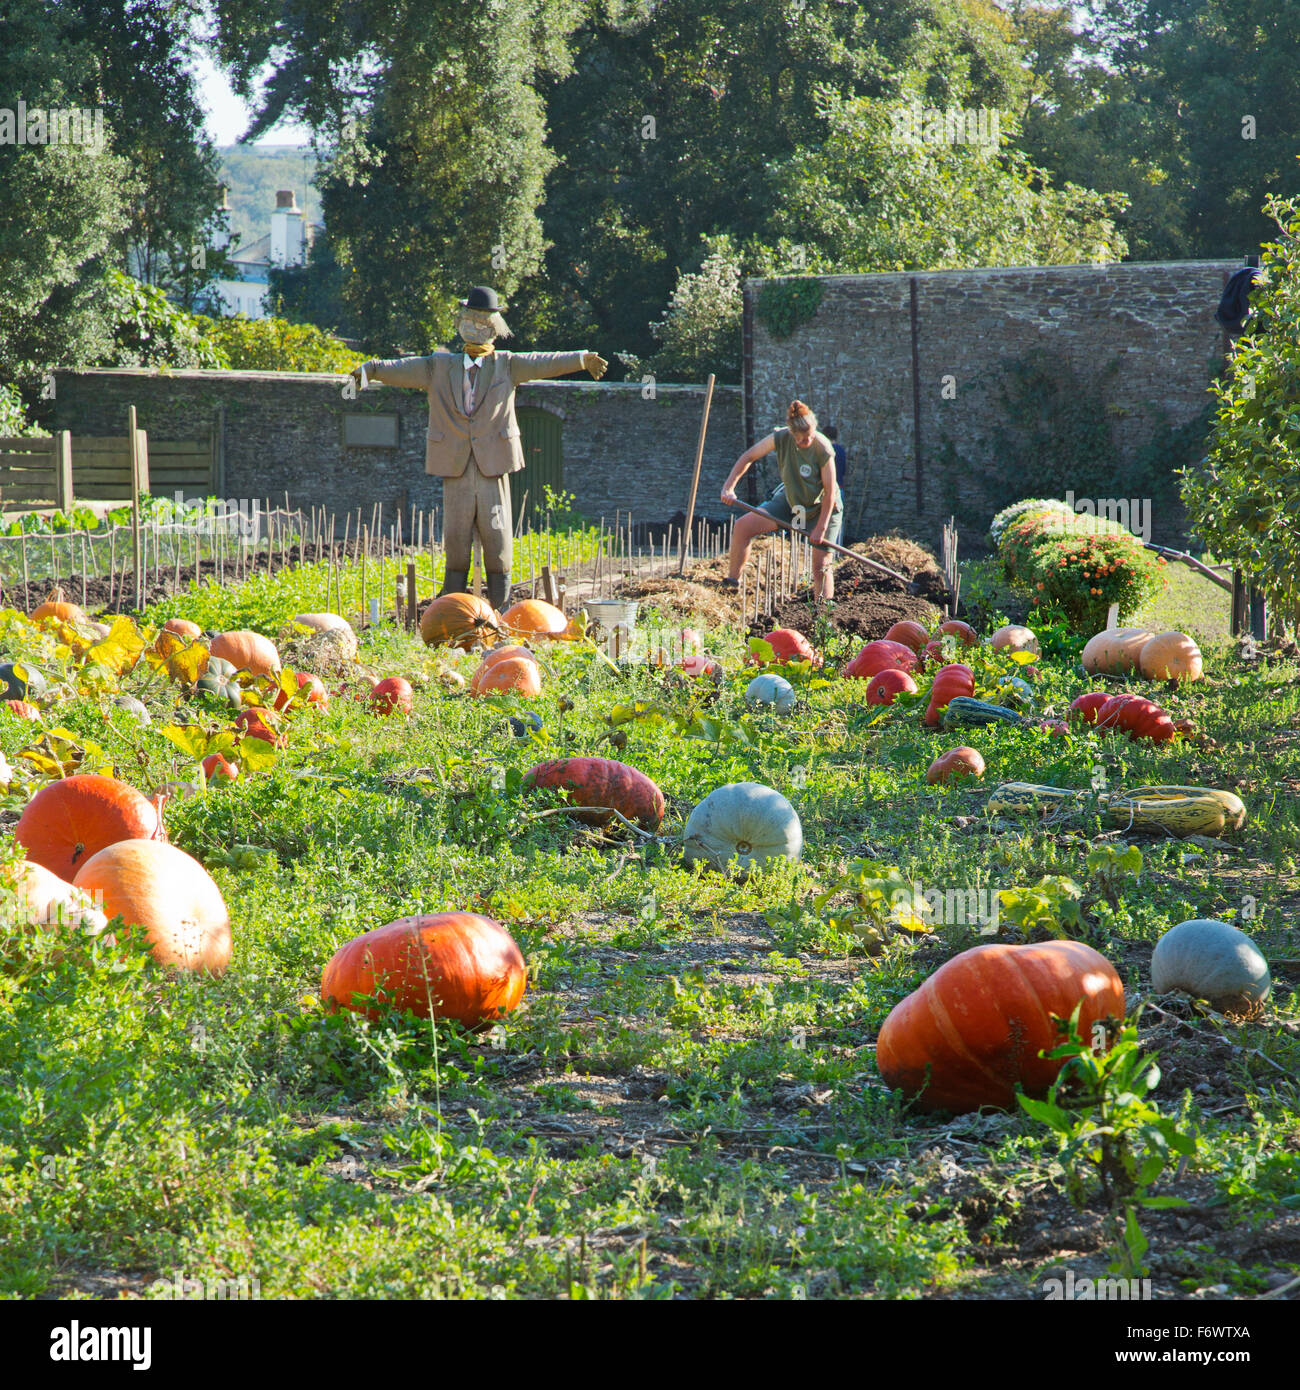 The pumpkin patch in the vegetable garden at the lost gardens of heligan in Cornwall,England,UK - Stock Image